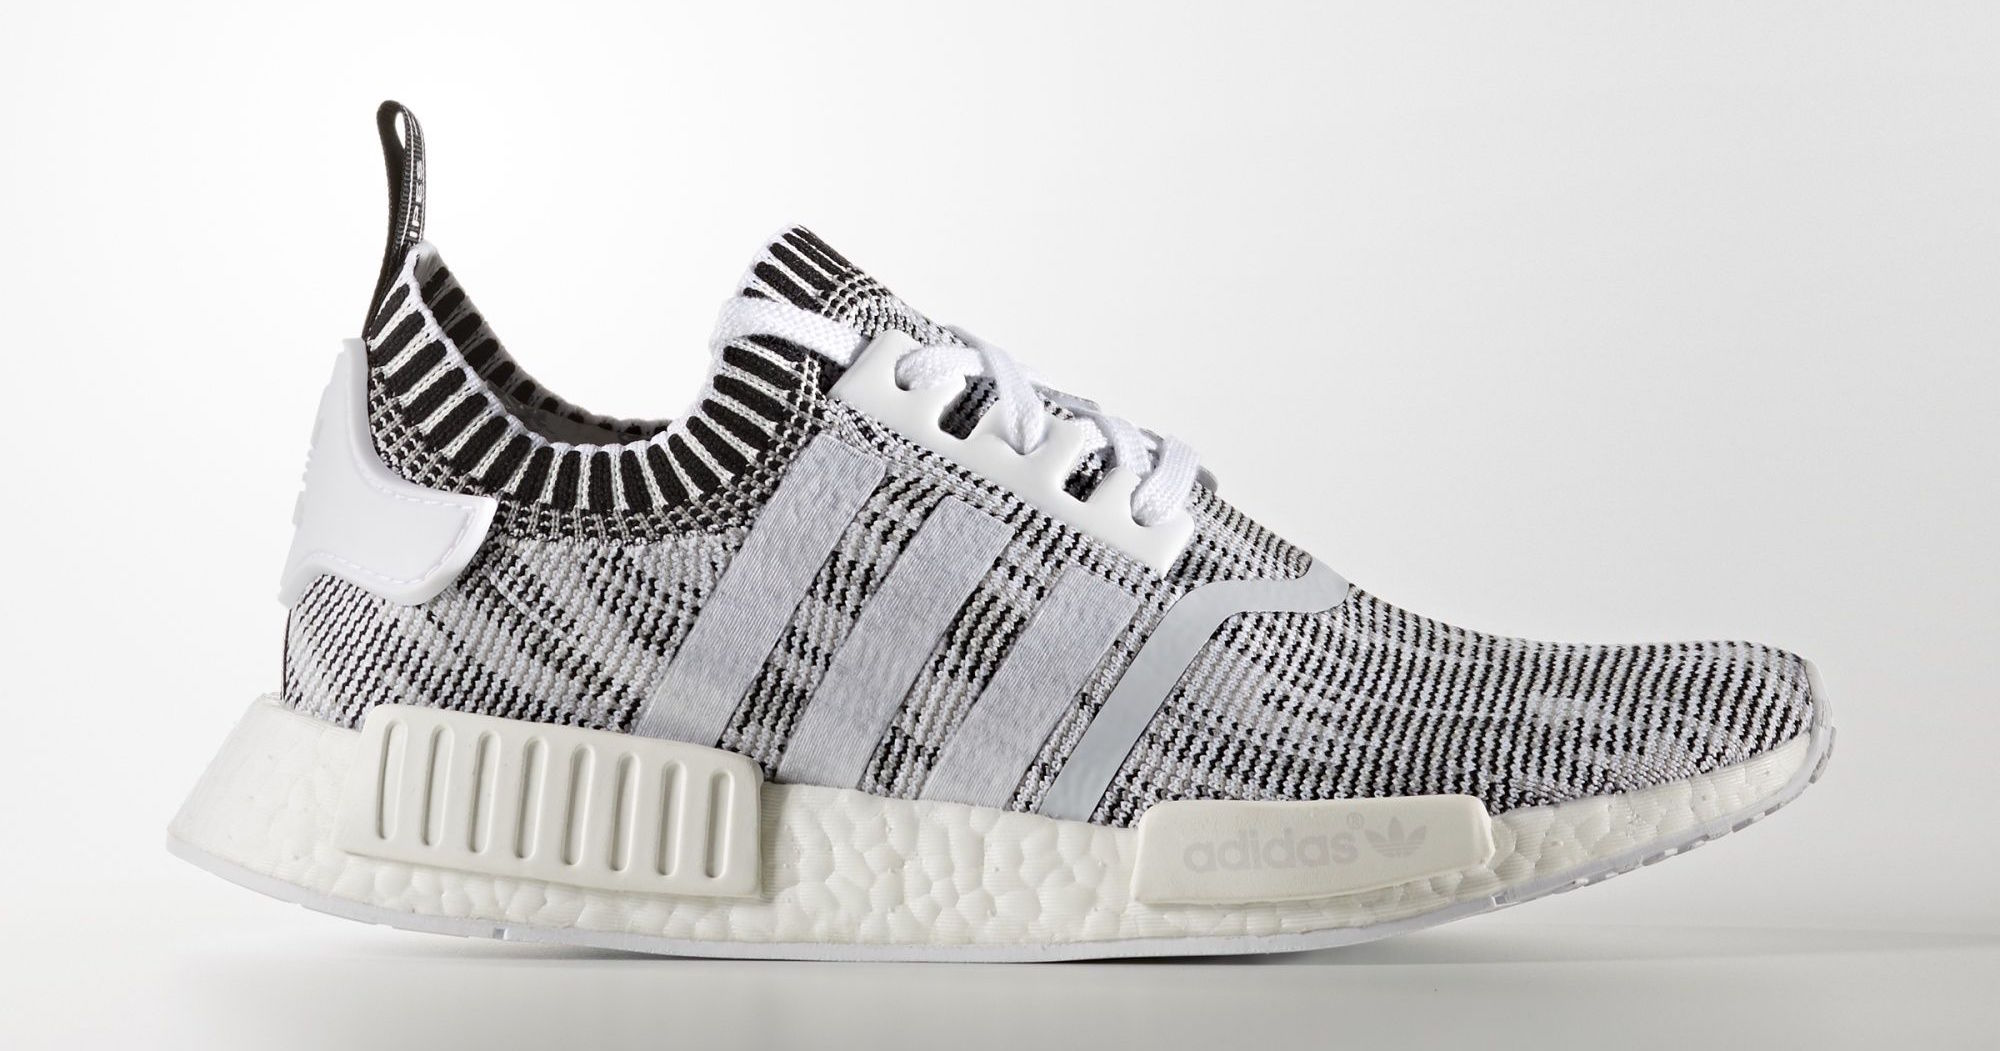 Rare Villa X Adidas NMD R1 BA9746 Men's Shoes Up To 70% Off